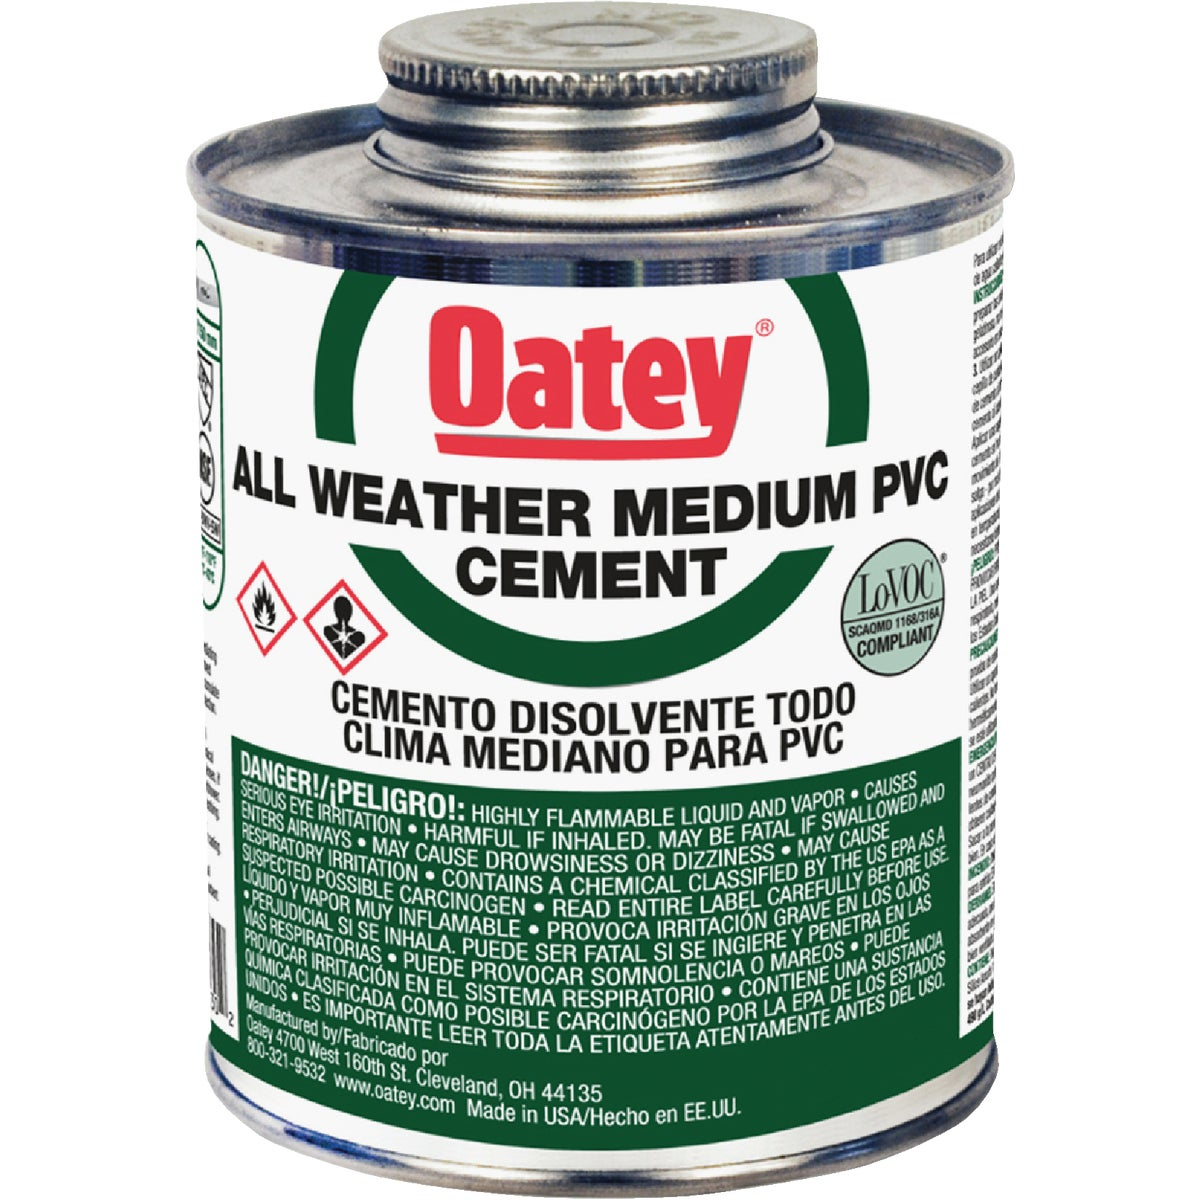 QT PVC CEMENT - 31133 by Oatey Scs